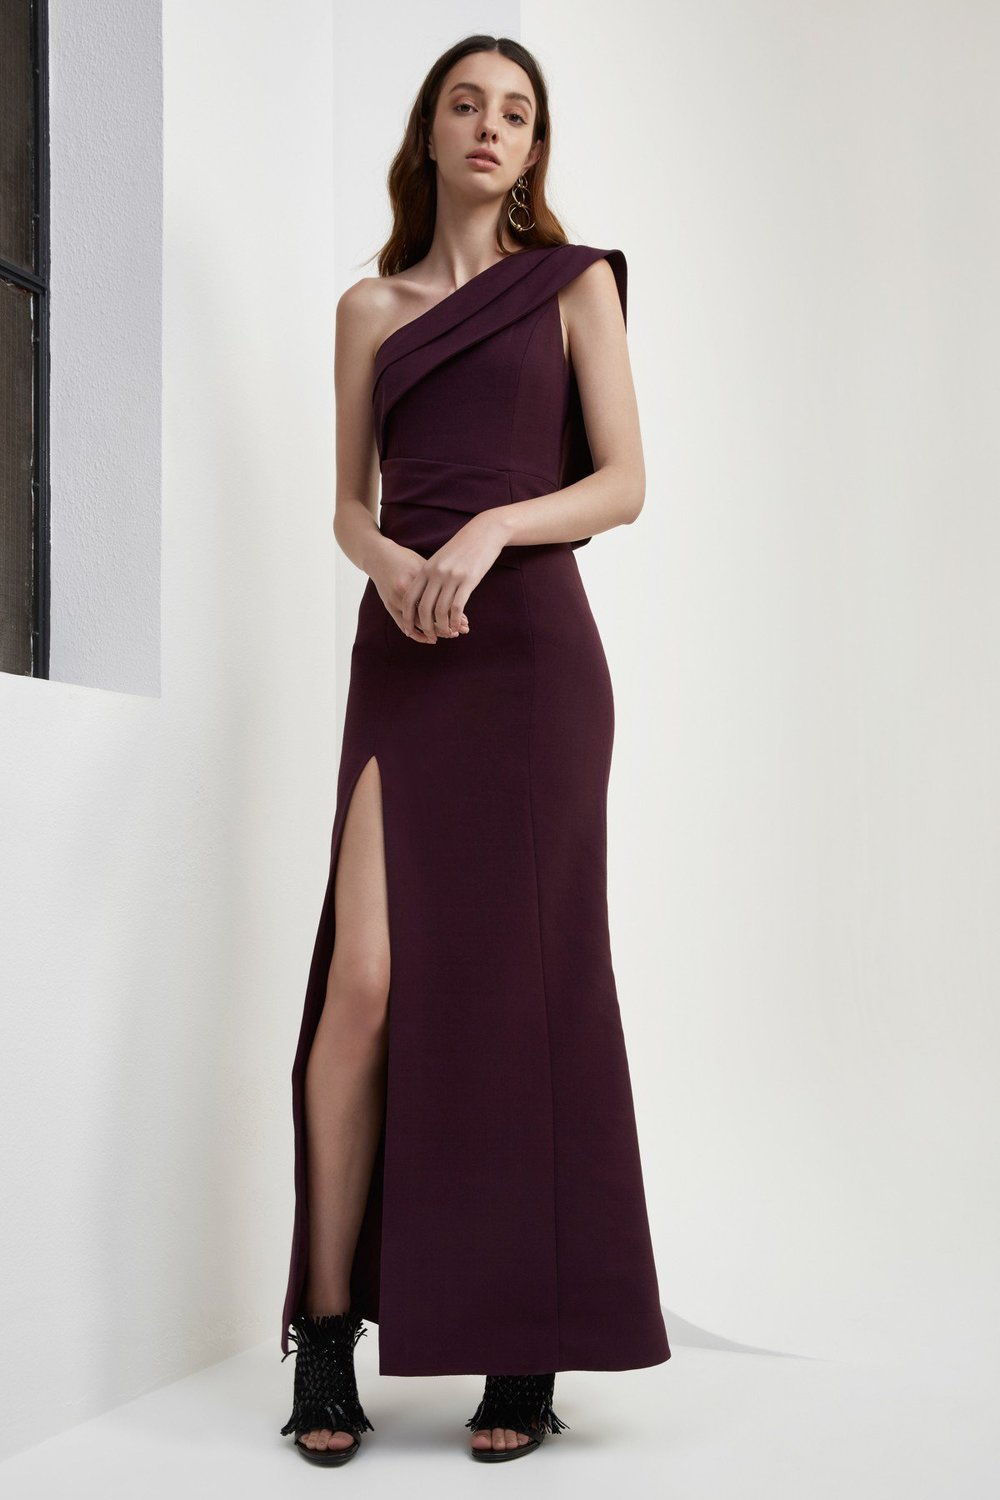 Shop C/MEO Don't Stop Full Length Dress.